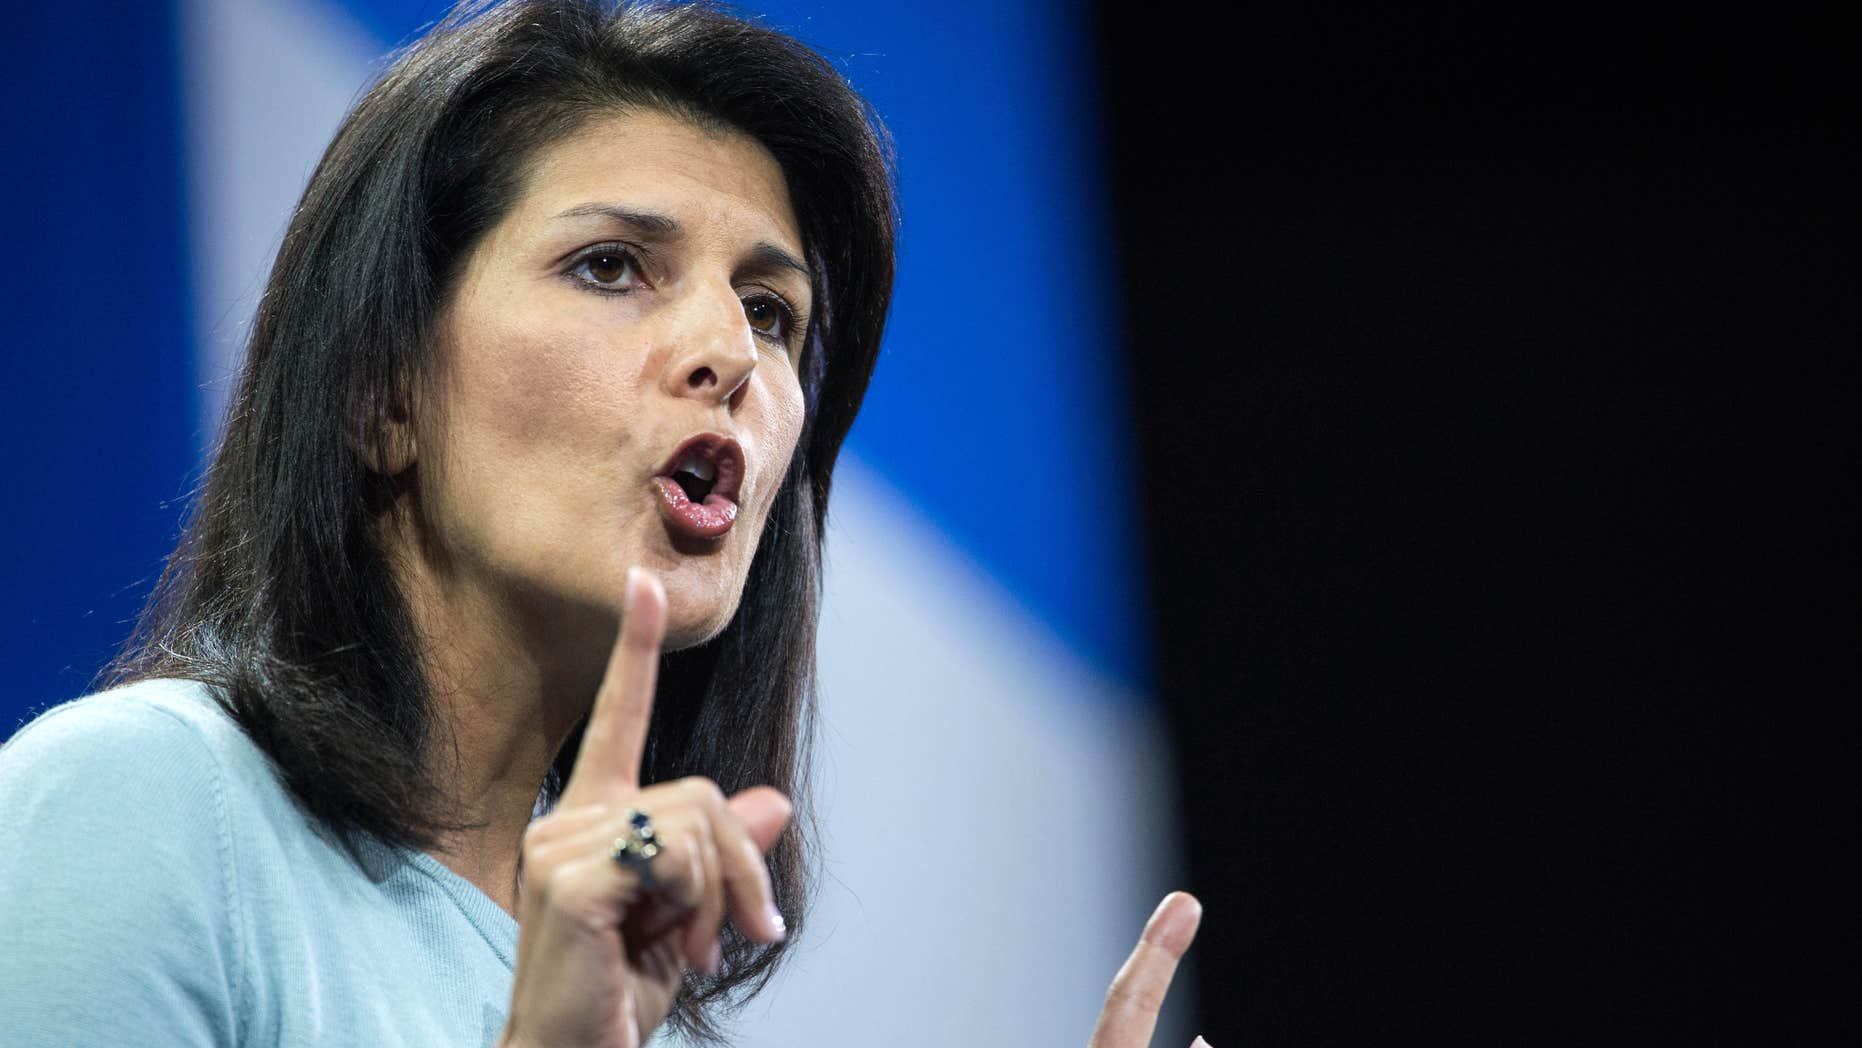 FILE - In this Jan. 9, 2016 file photo, South Carolina Gov. Nikki Haley speaks to the crowd at the Kemp Forum in Columbia, S.C.